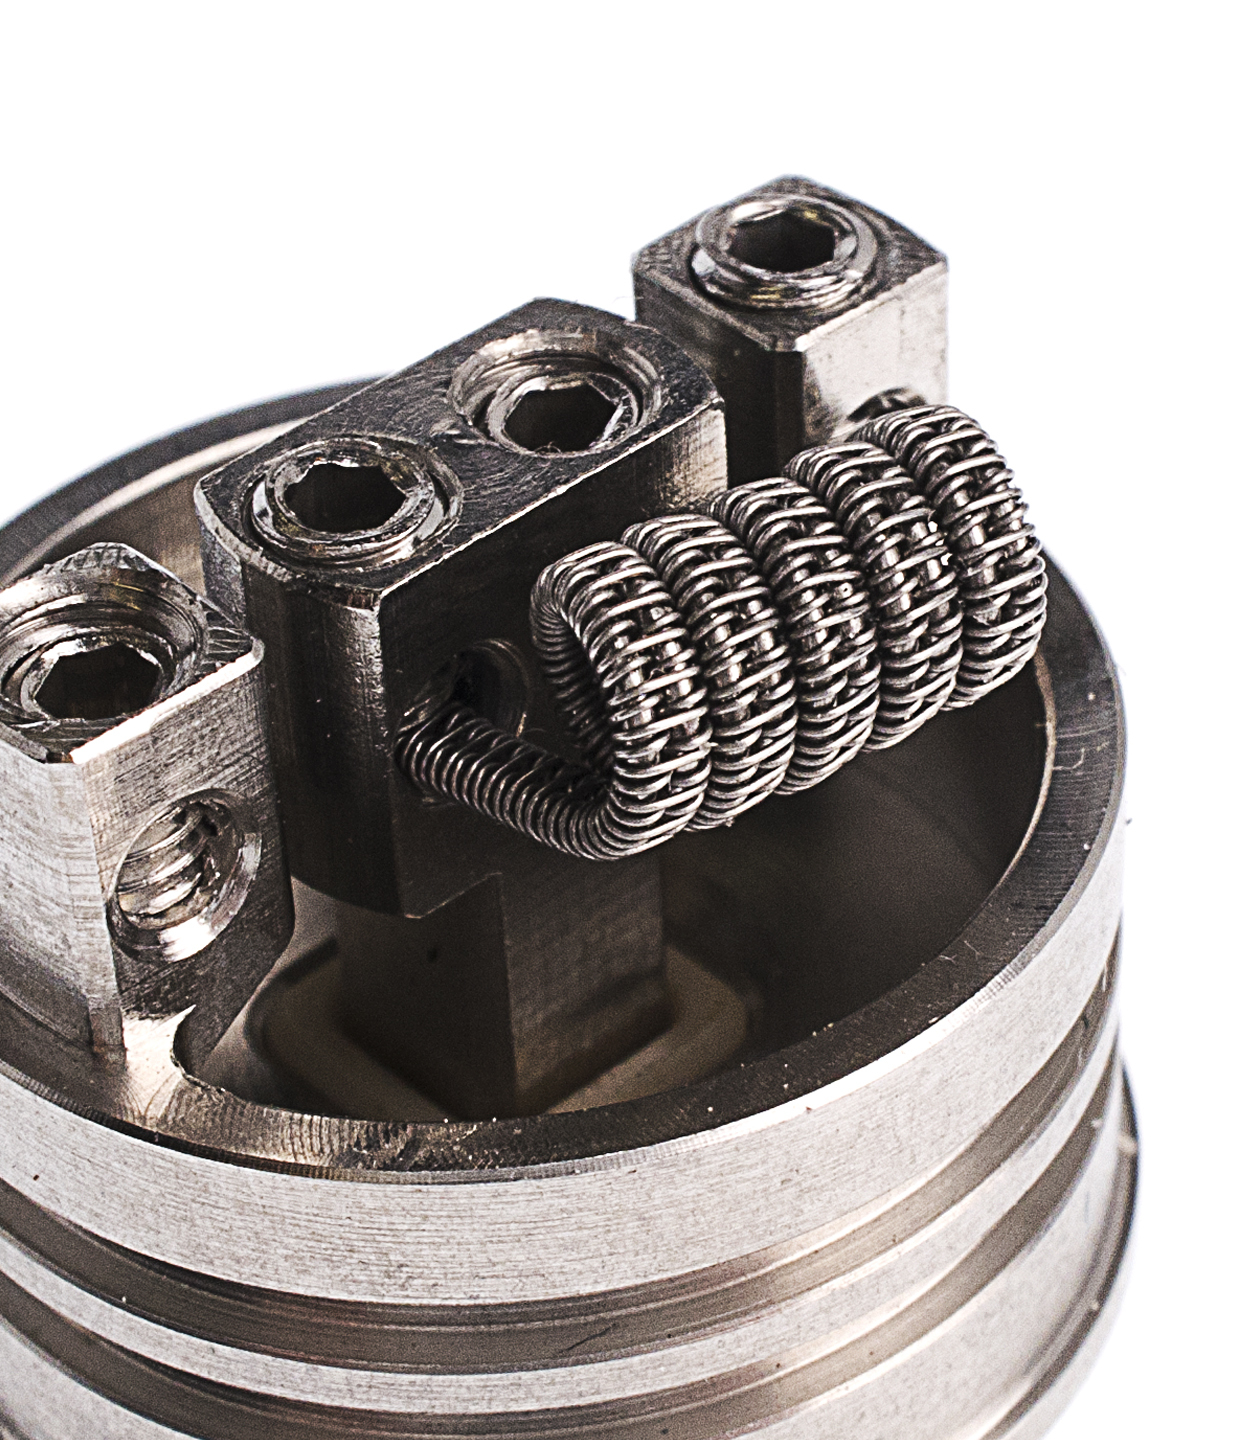 намотка Staggered fused Clapton coil